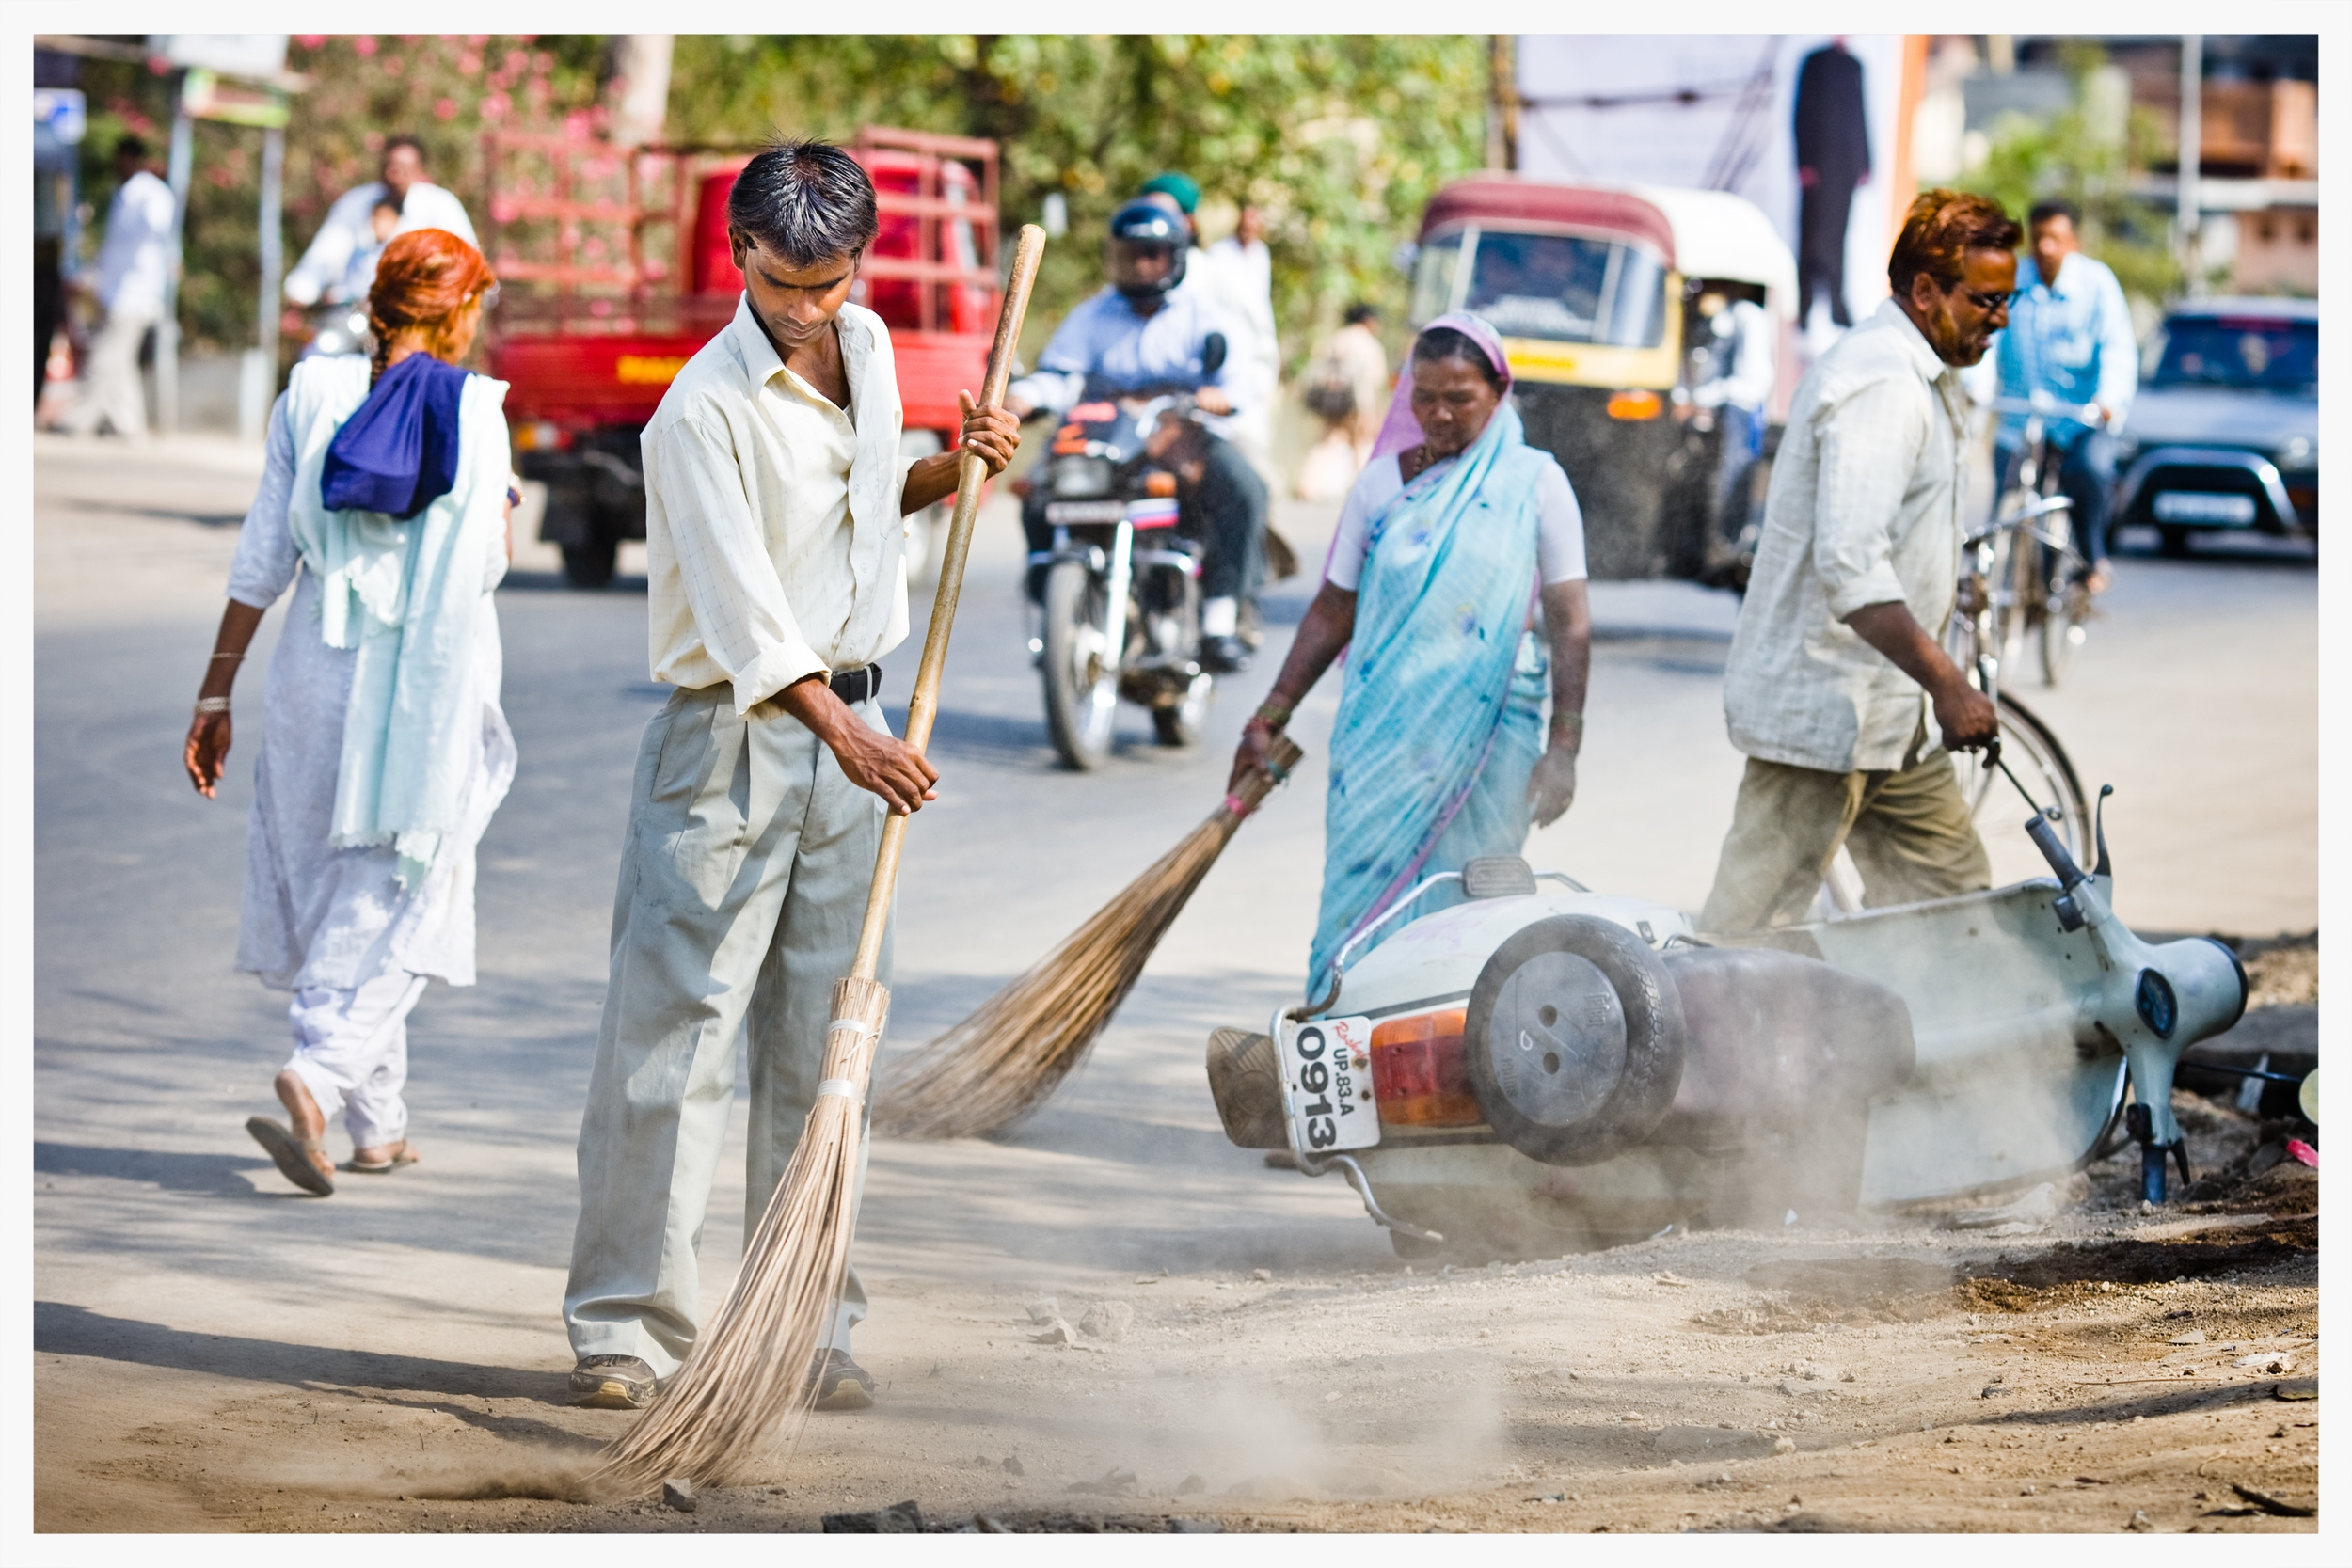 Road sweeper, Indian Dalits,Being Untouchable. Photo: © Marcus Perkins